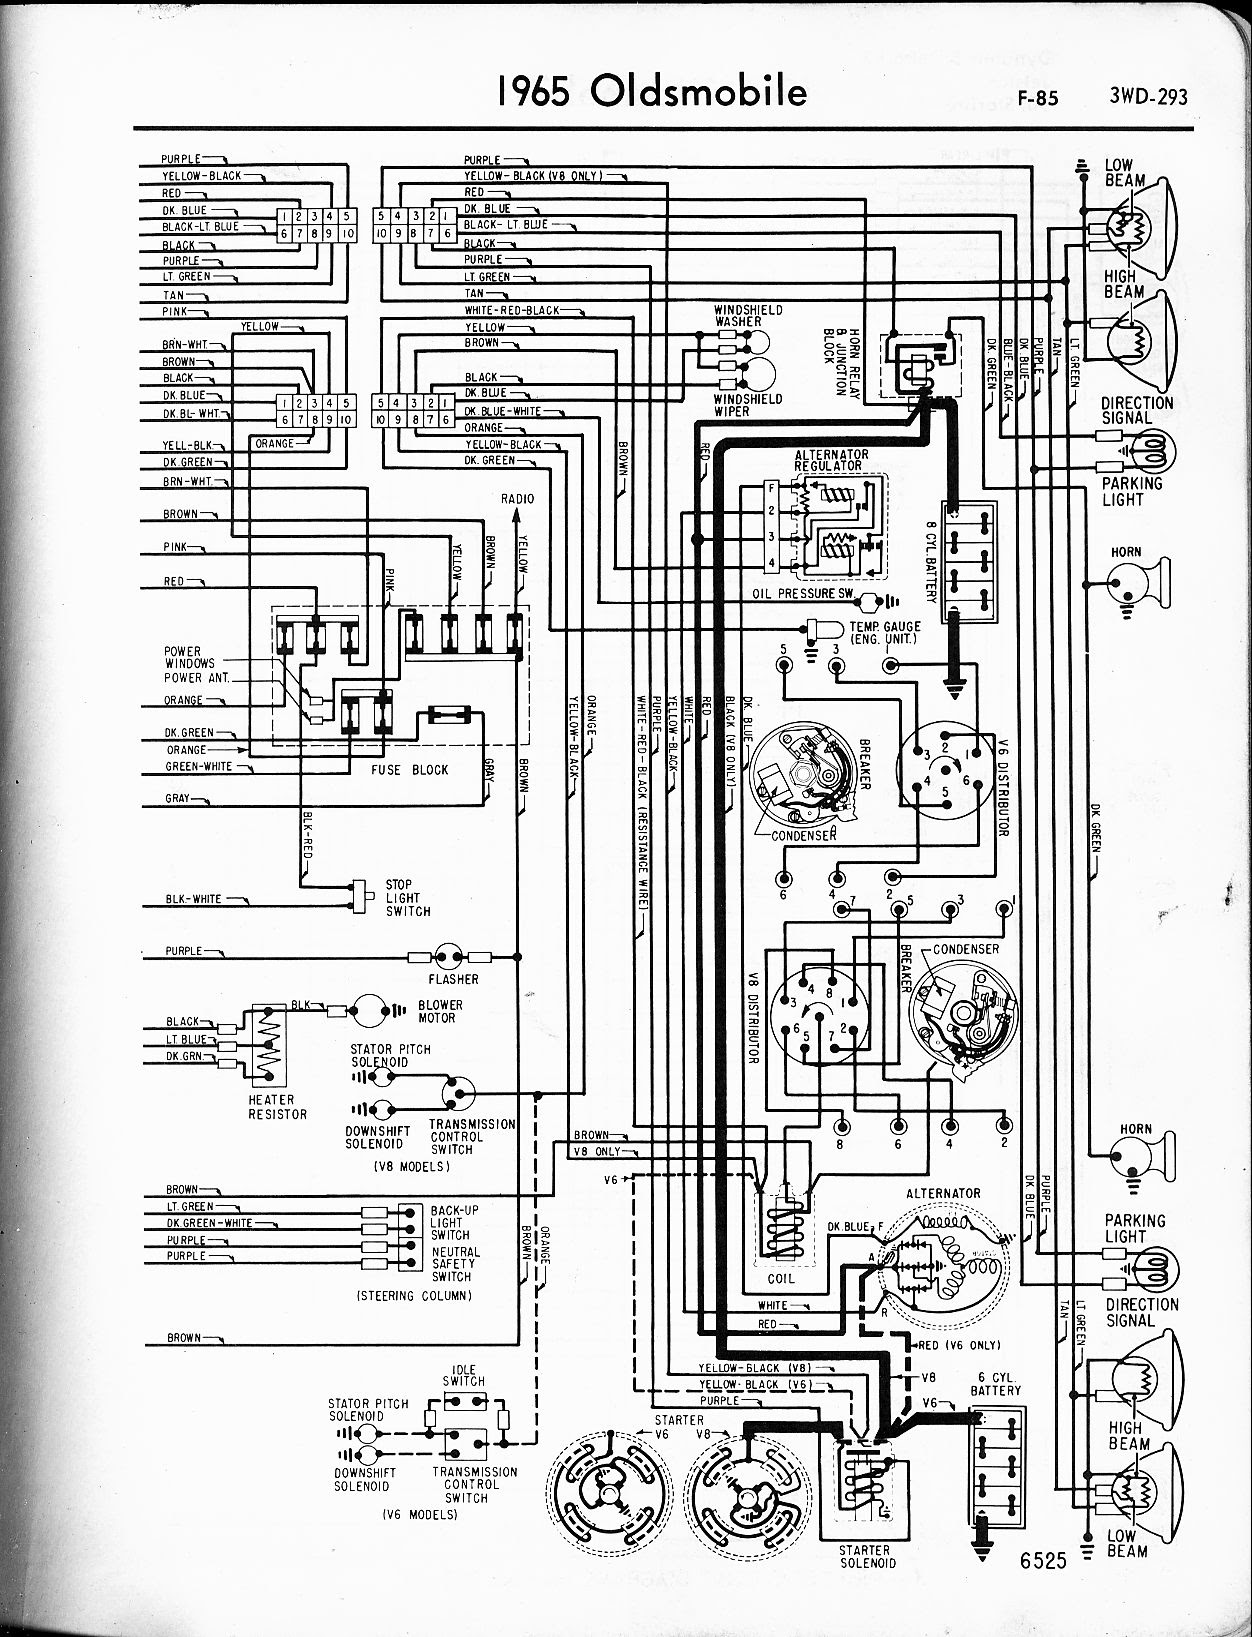 Diagram 1992 Oldsmobile 88 Royale Wiring Diagram Full Version Hd Quality Wiring Diagram Shipwiringl Ripettapalace It